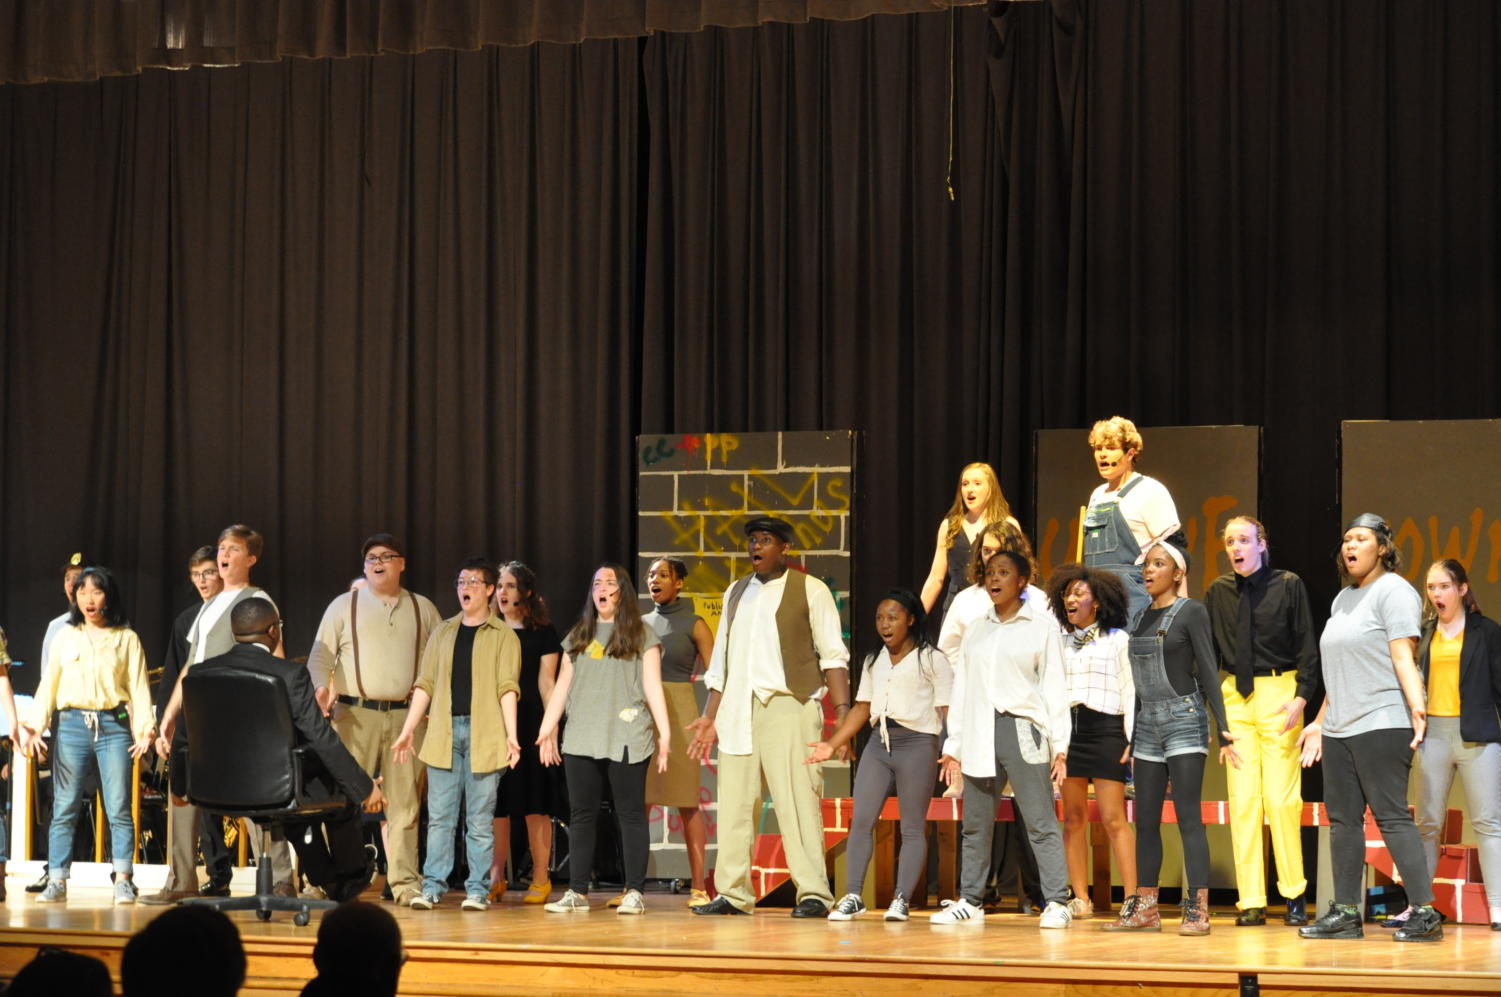 Urinetown members pose during their first dance number.